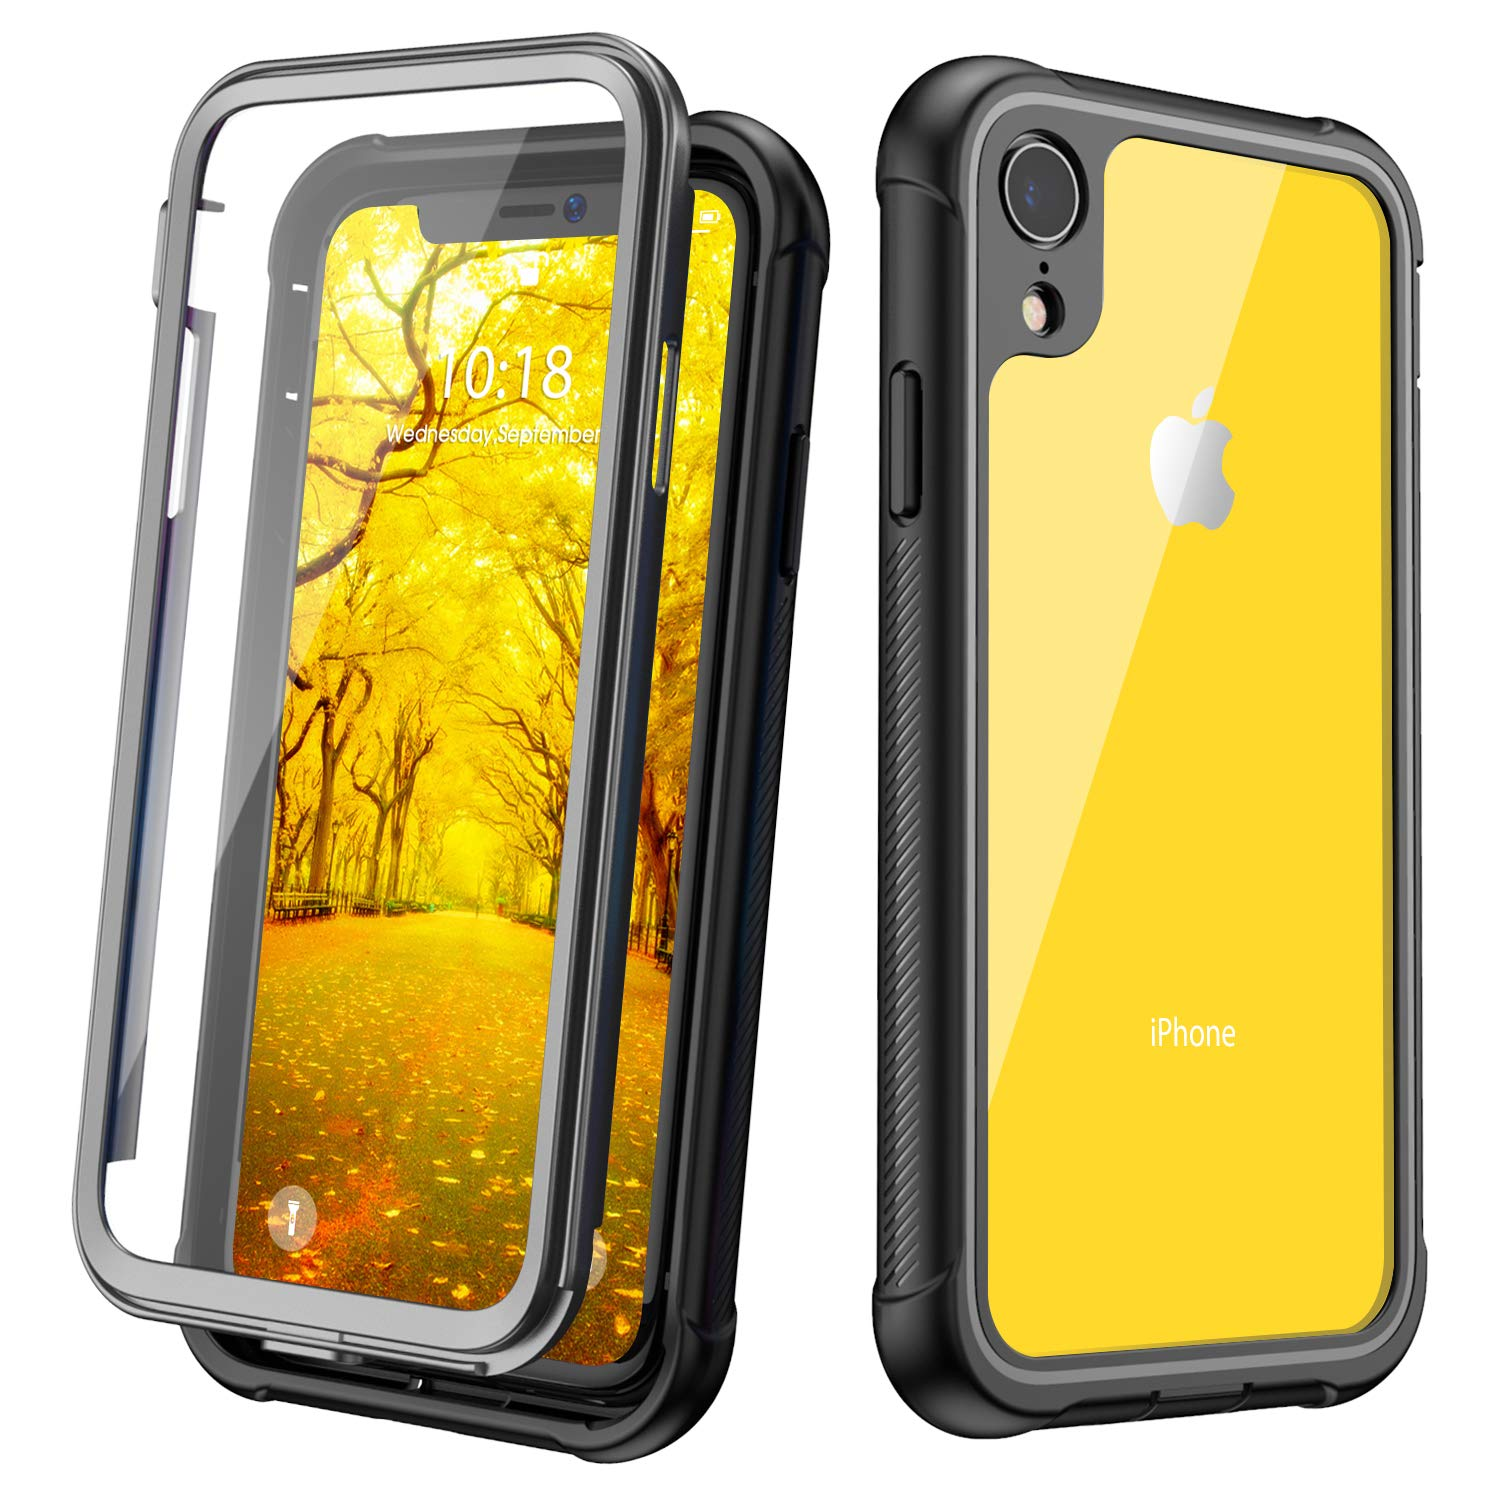 Justcool Designed for iPhone XR Case, Clear Full Body Heavy Duty Protection with Built-in Screen Protector Shockproof Rugged Cover Designed for iPhone XR Cases (2018) 6.1 Inch (Black/Gray+Clear) by Justcool